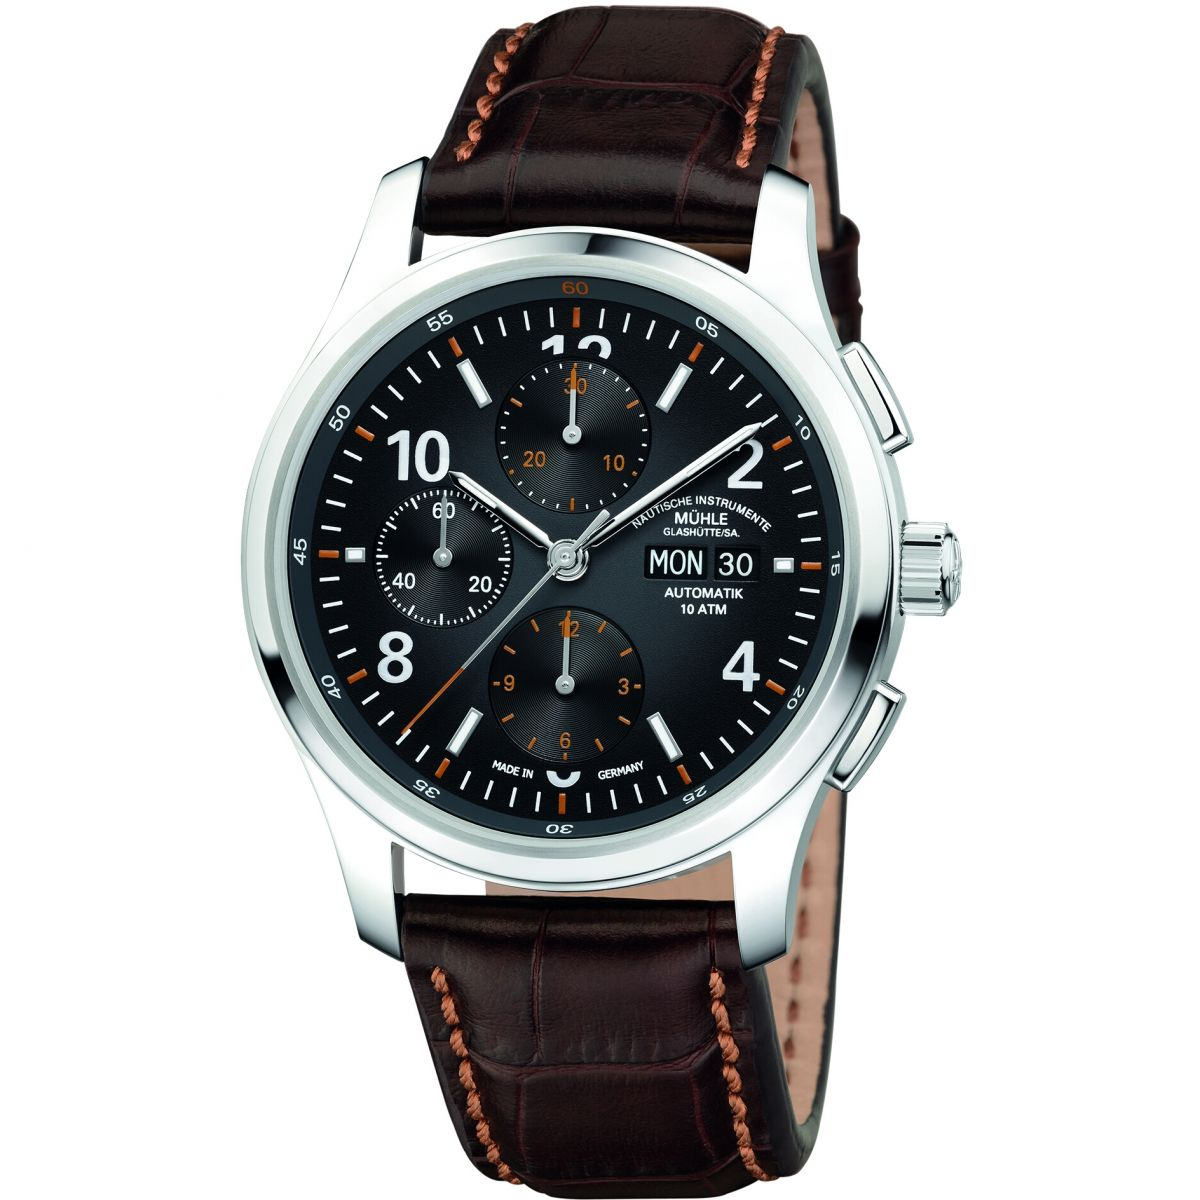 Gents muhle glashutte lunova chronograph chronograph watch m1 43 06 lb for Muhle watches